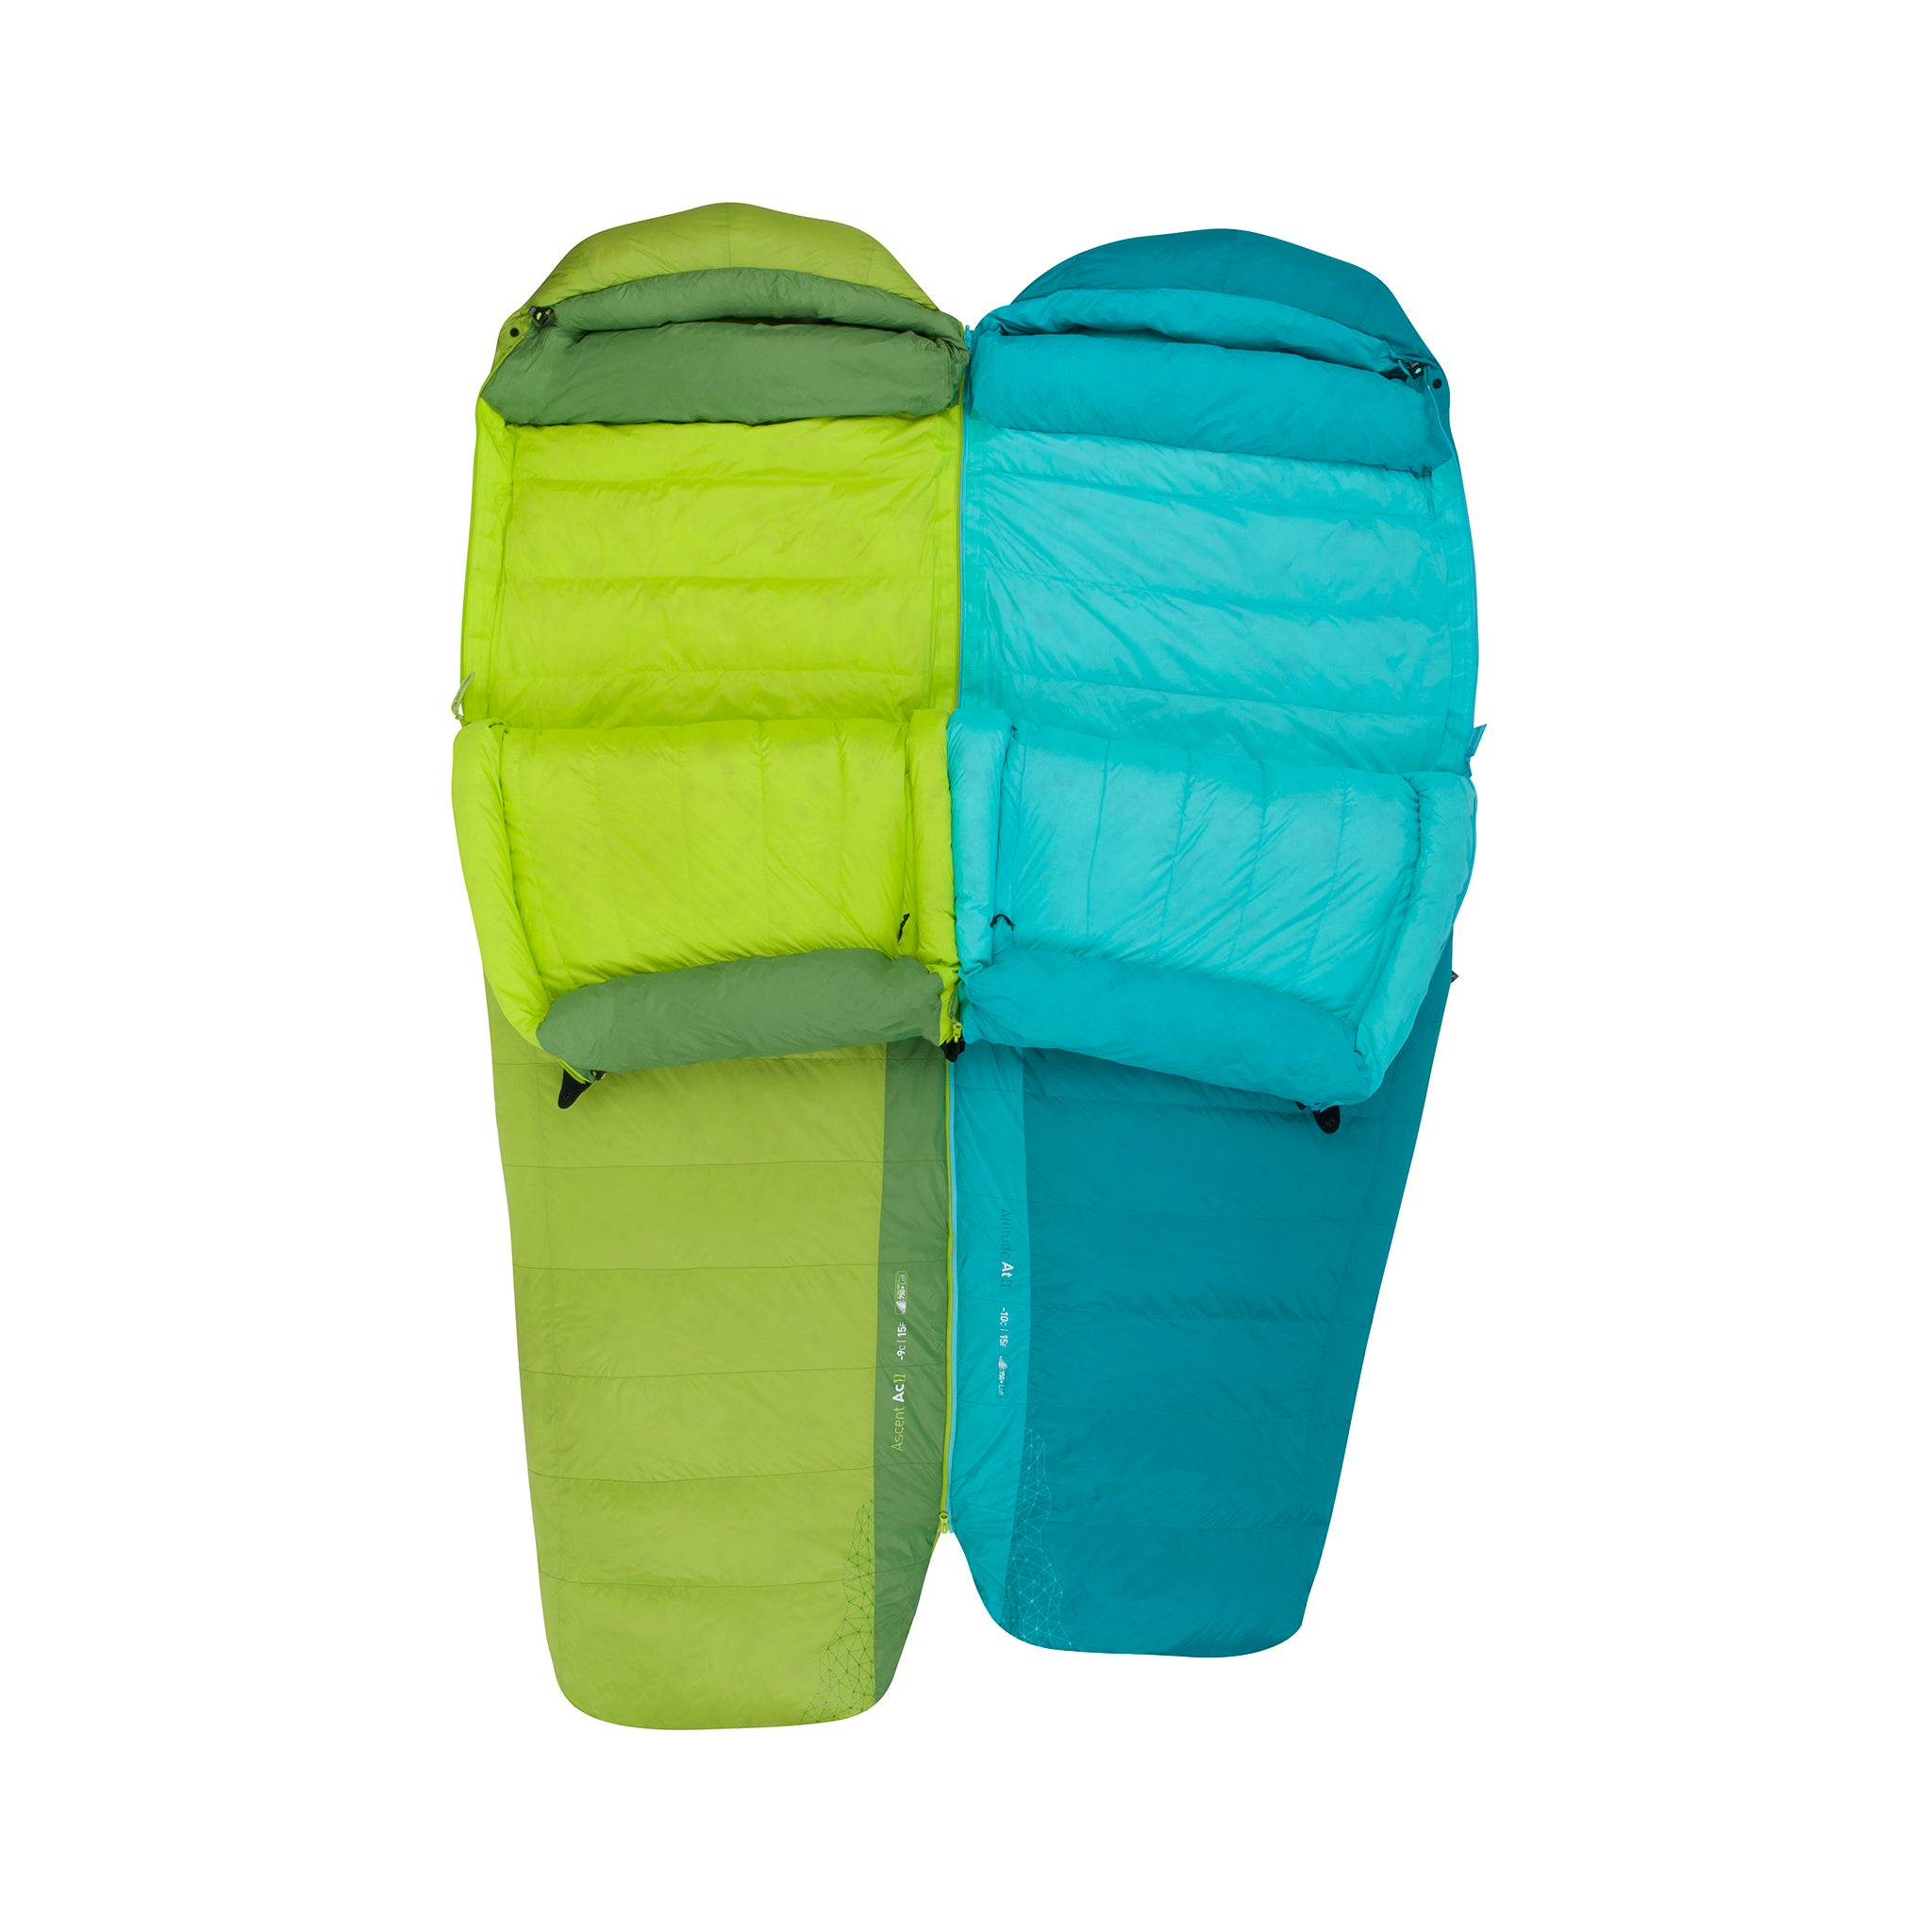 Ascent Down Sleeping Bag _ zips together for couples